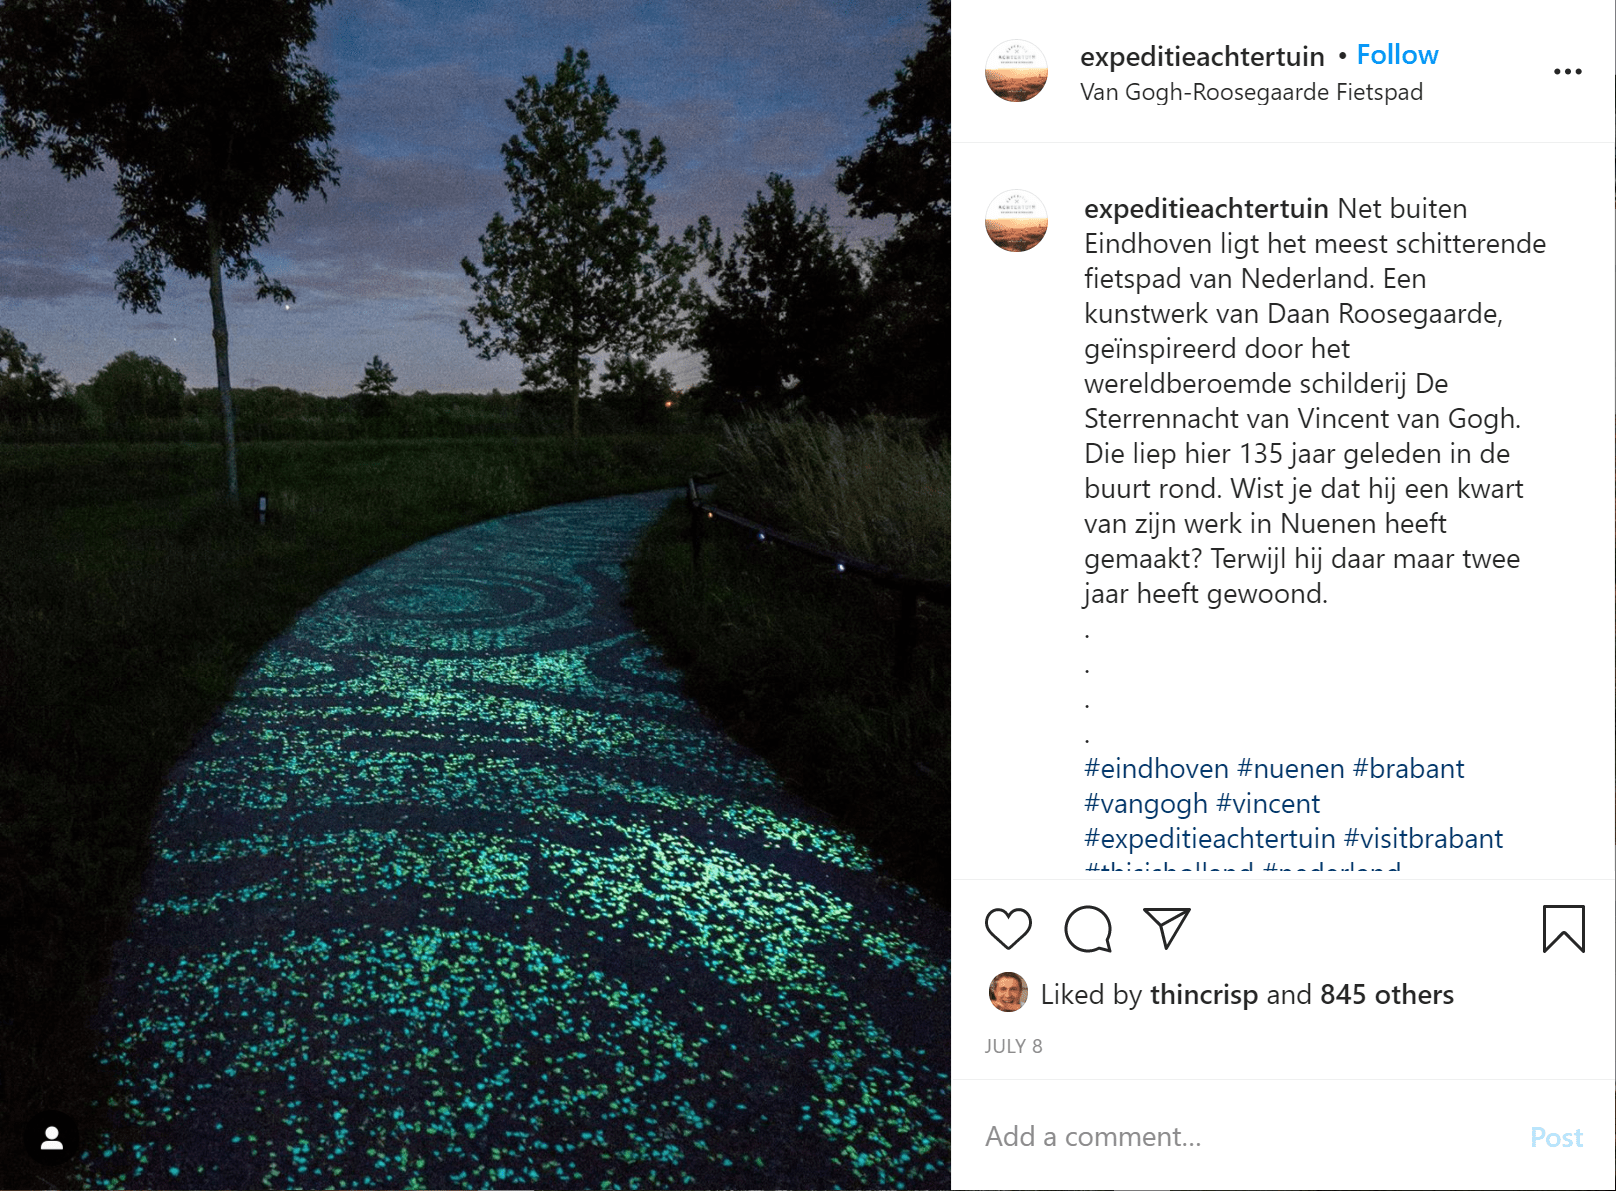 night time, a path is lit with green glowing stones in the pattern of the starry night painting by vincent van gogh